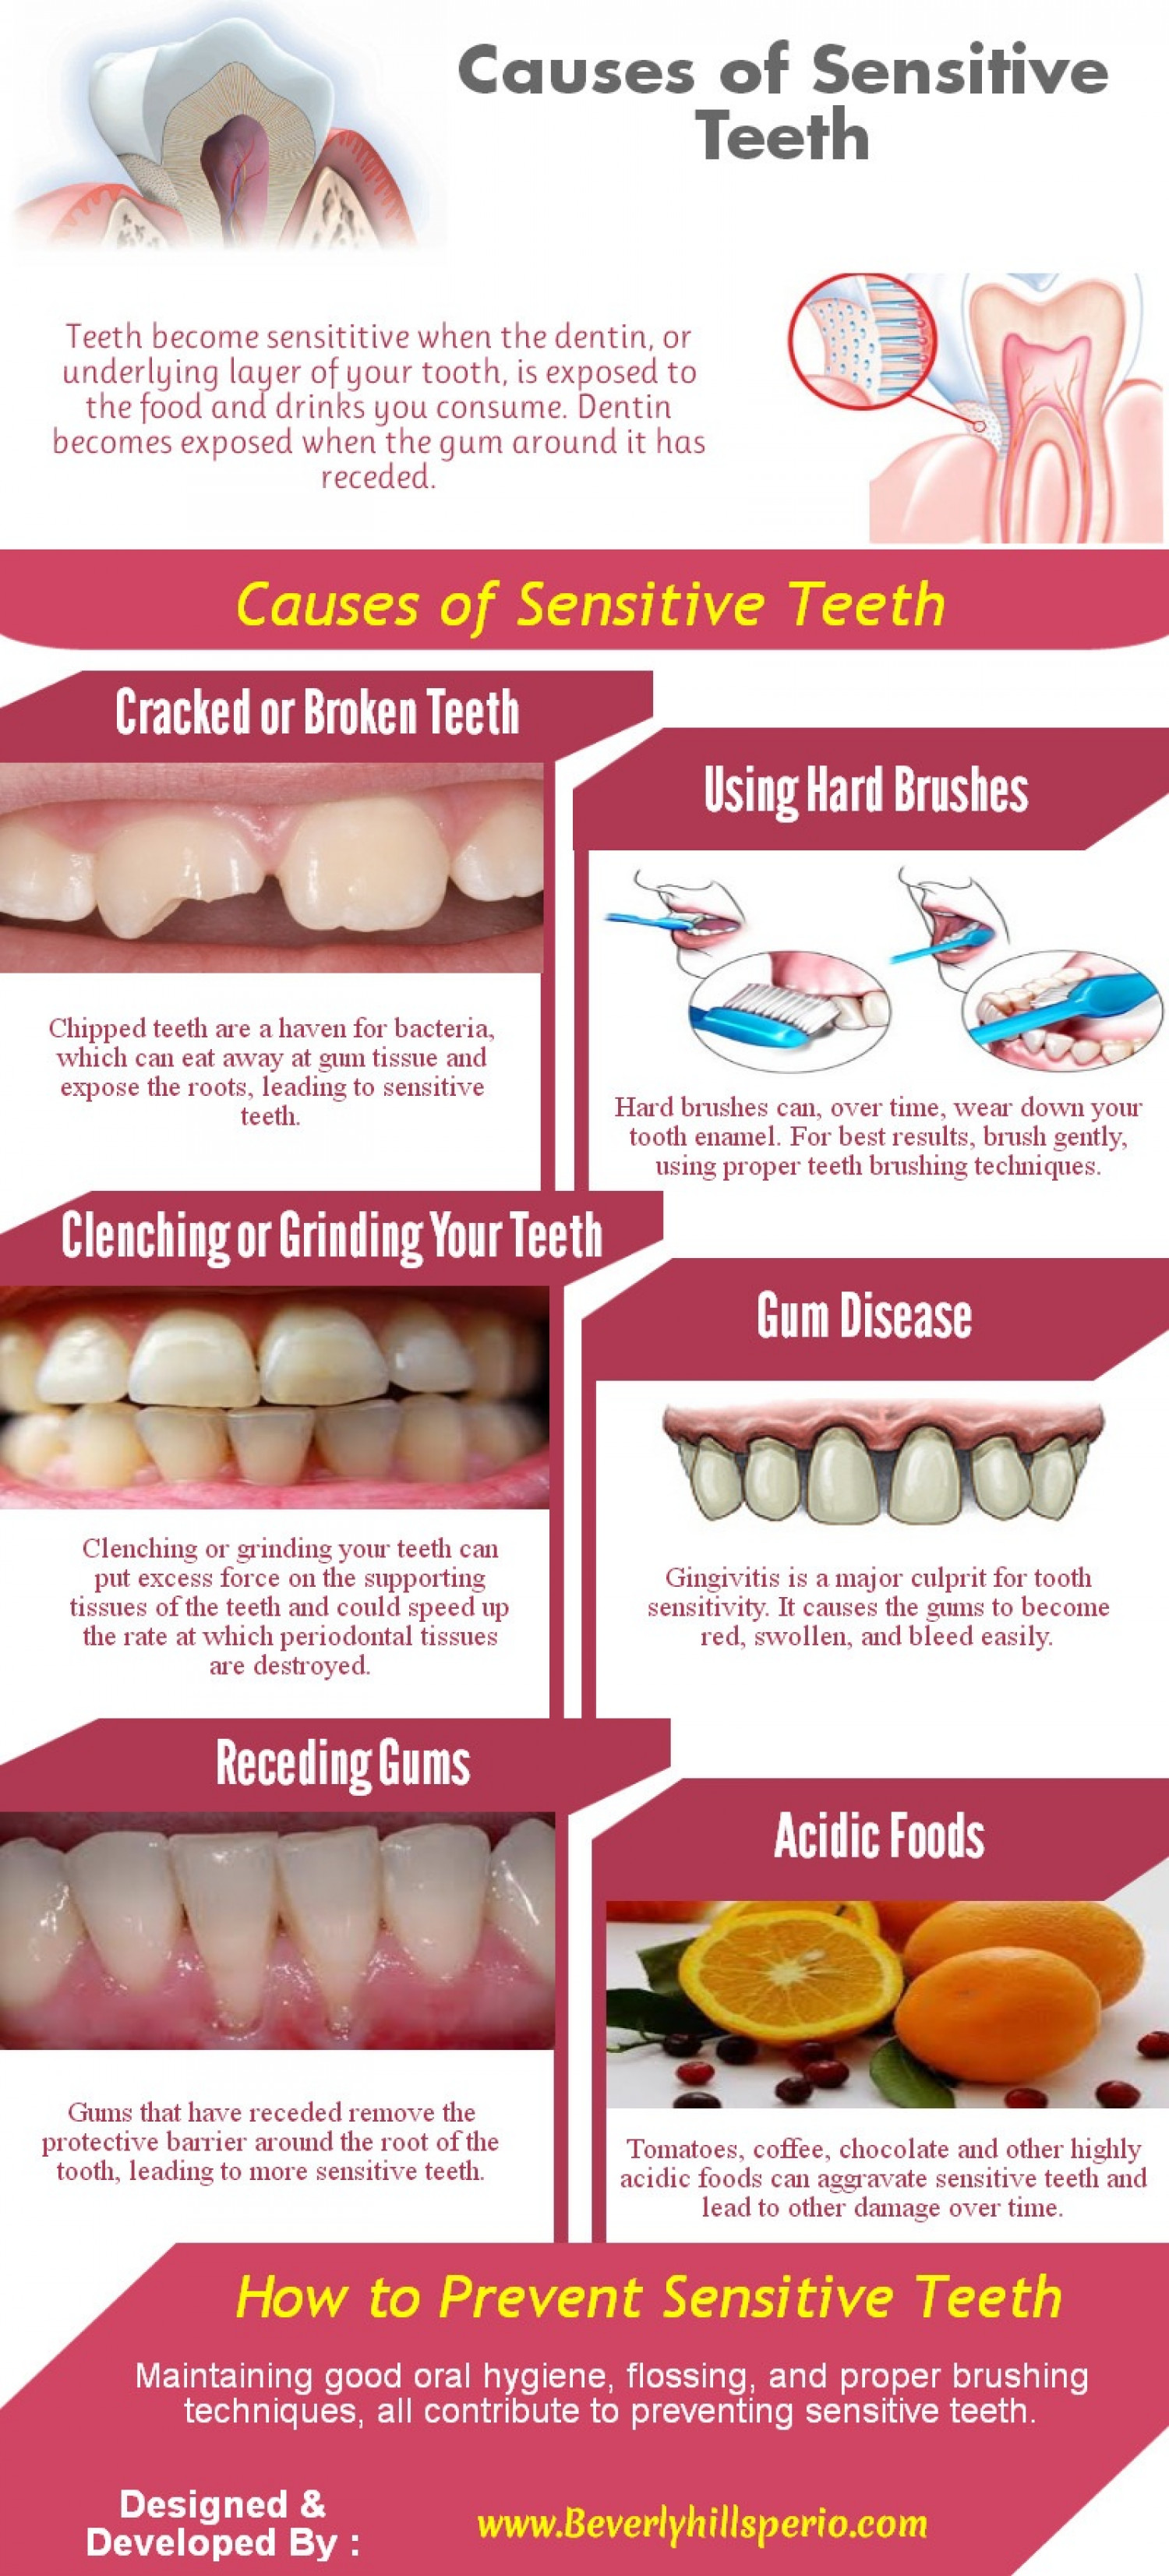 Causes of Sensitive Teeth Infographic